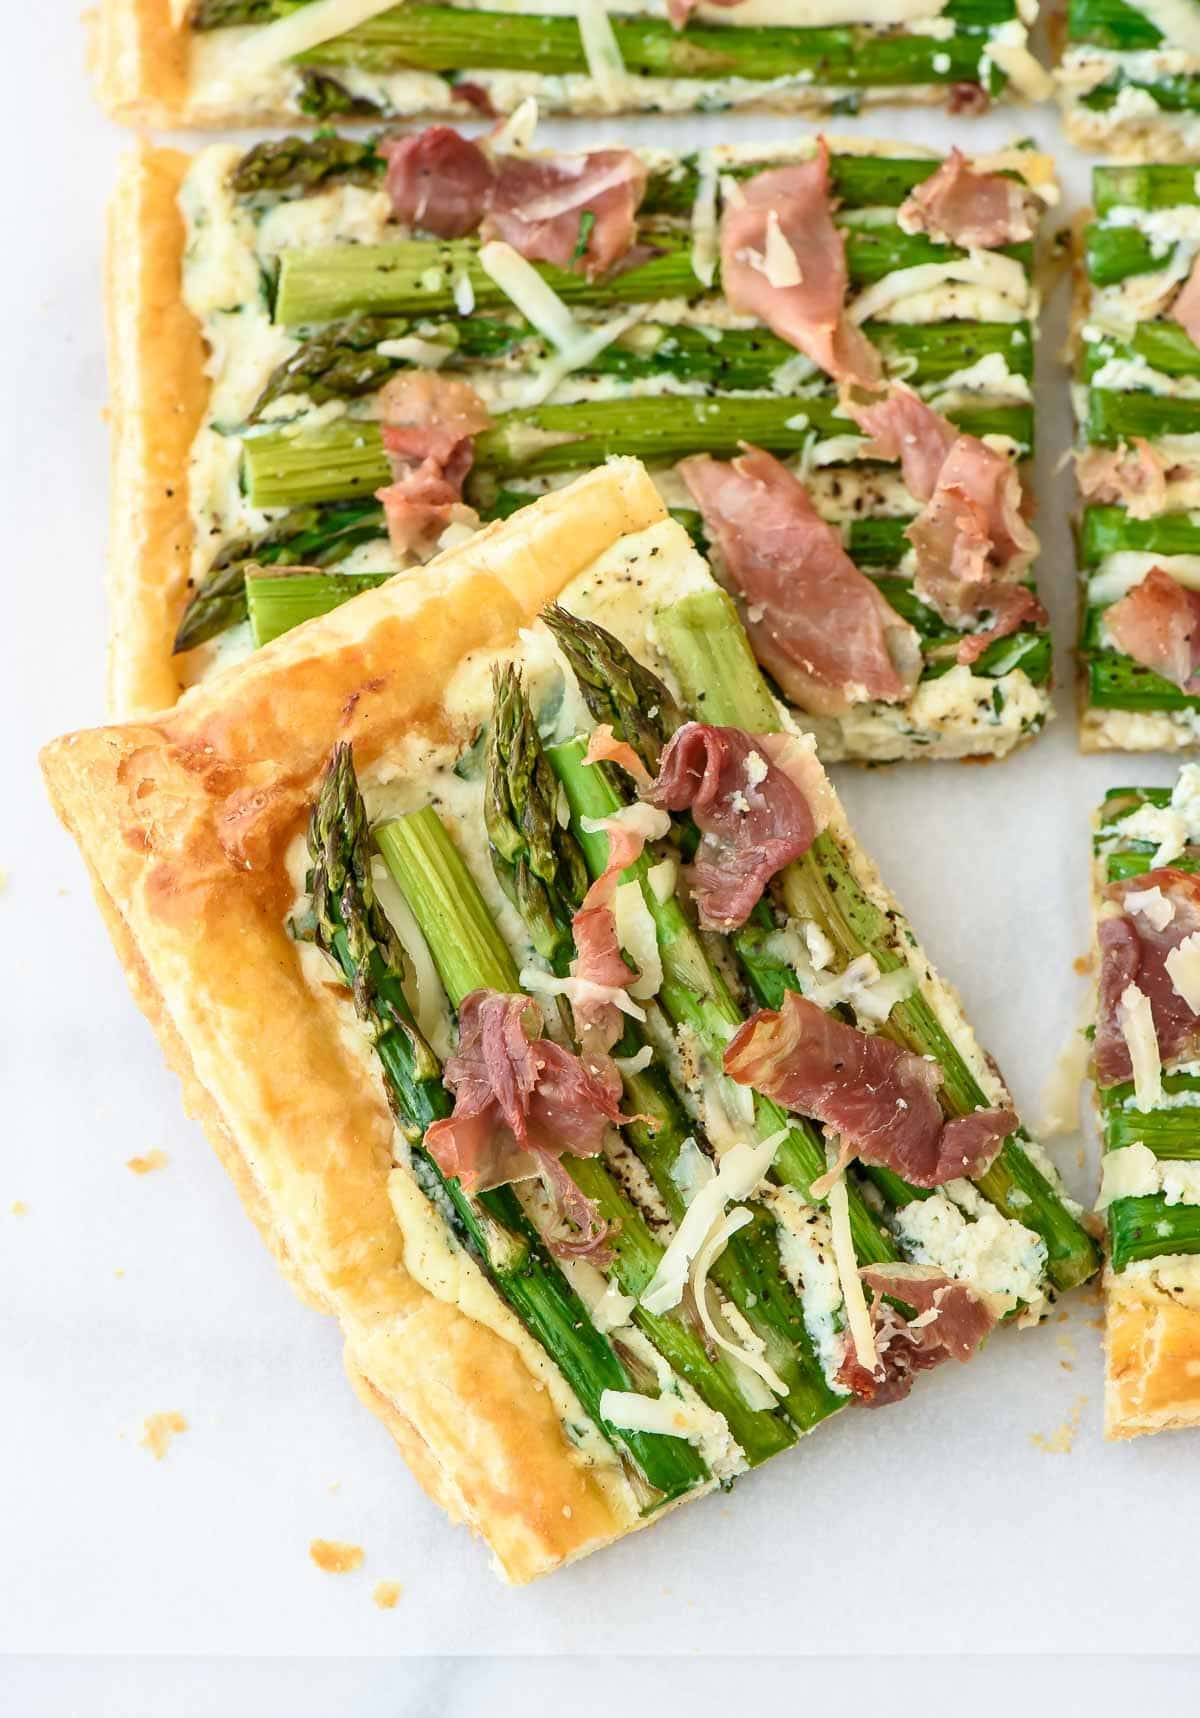 This GORGEOUS and EASY Asparagus Tart is made with puff pastry for an instant shortcut. Buttery crust, creamy ricotta, salty prosciutto. You HAVE to make this recipe! @wellplated